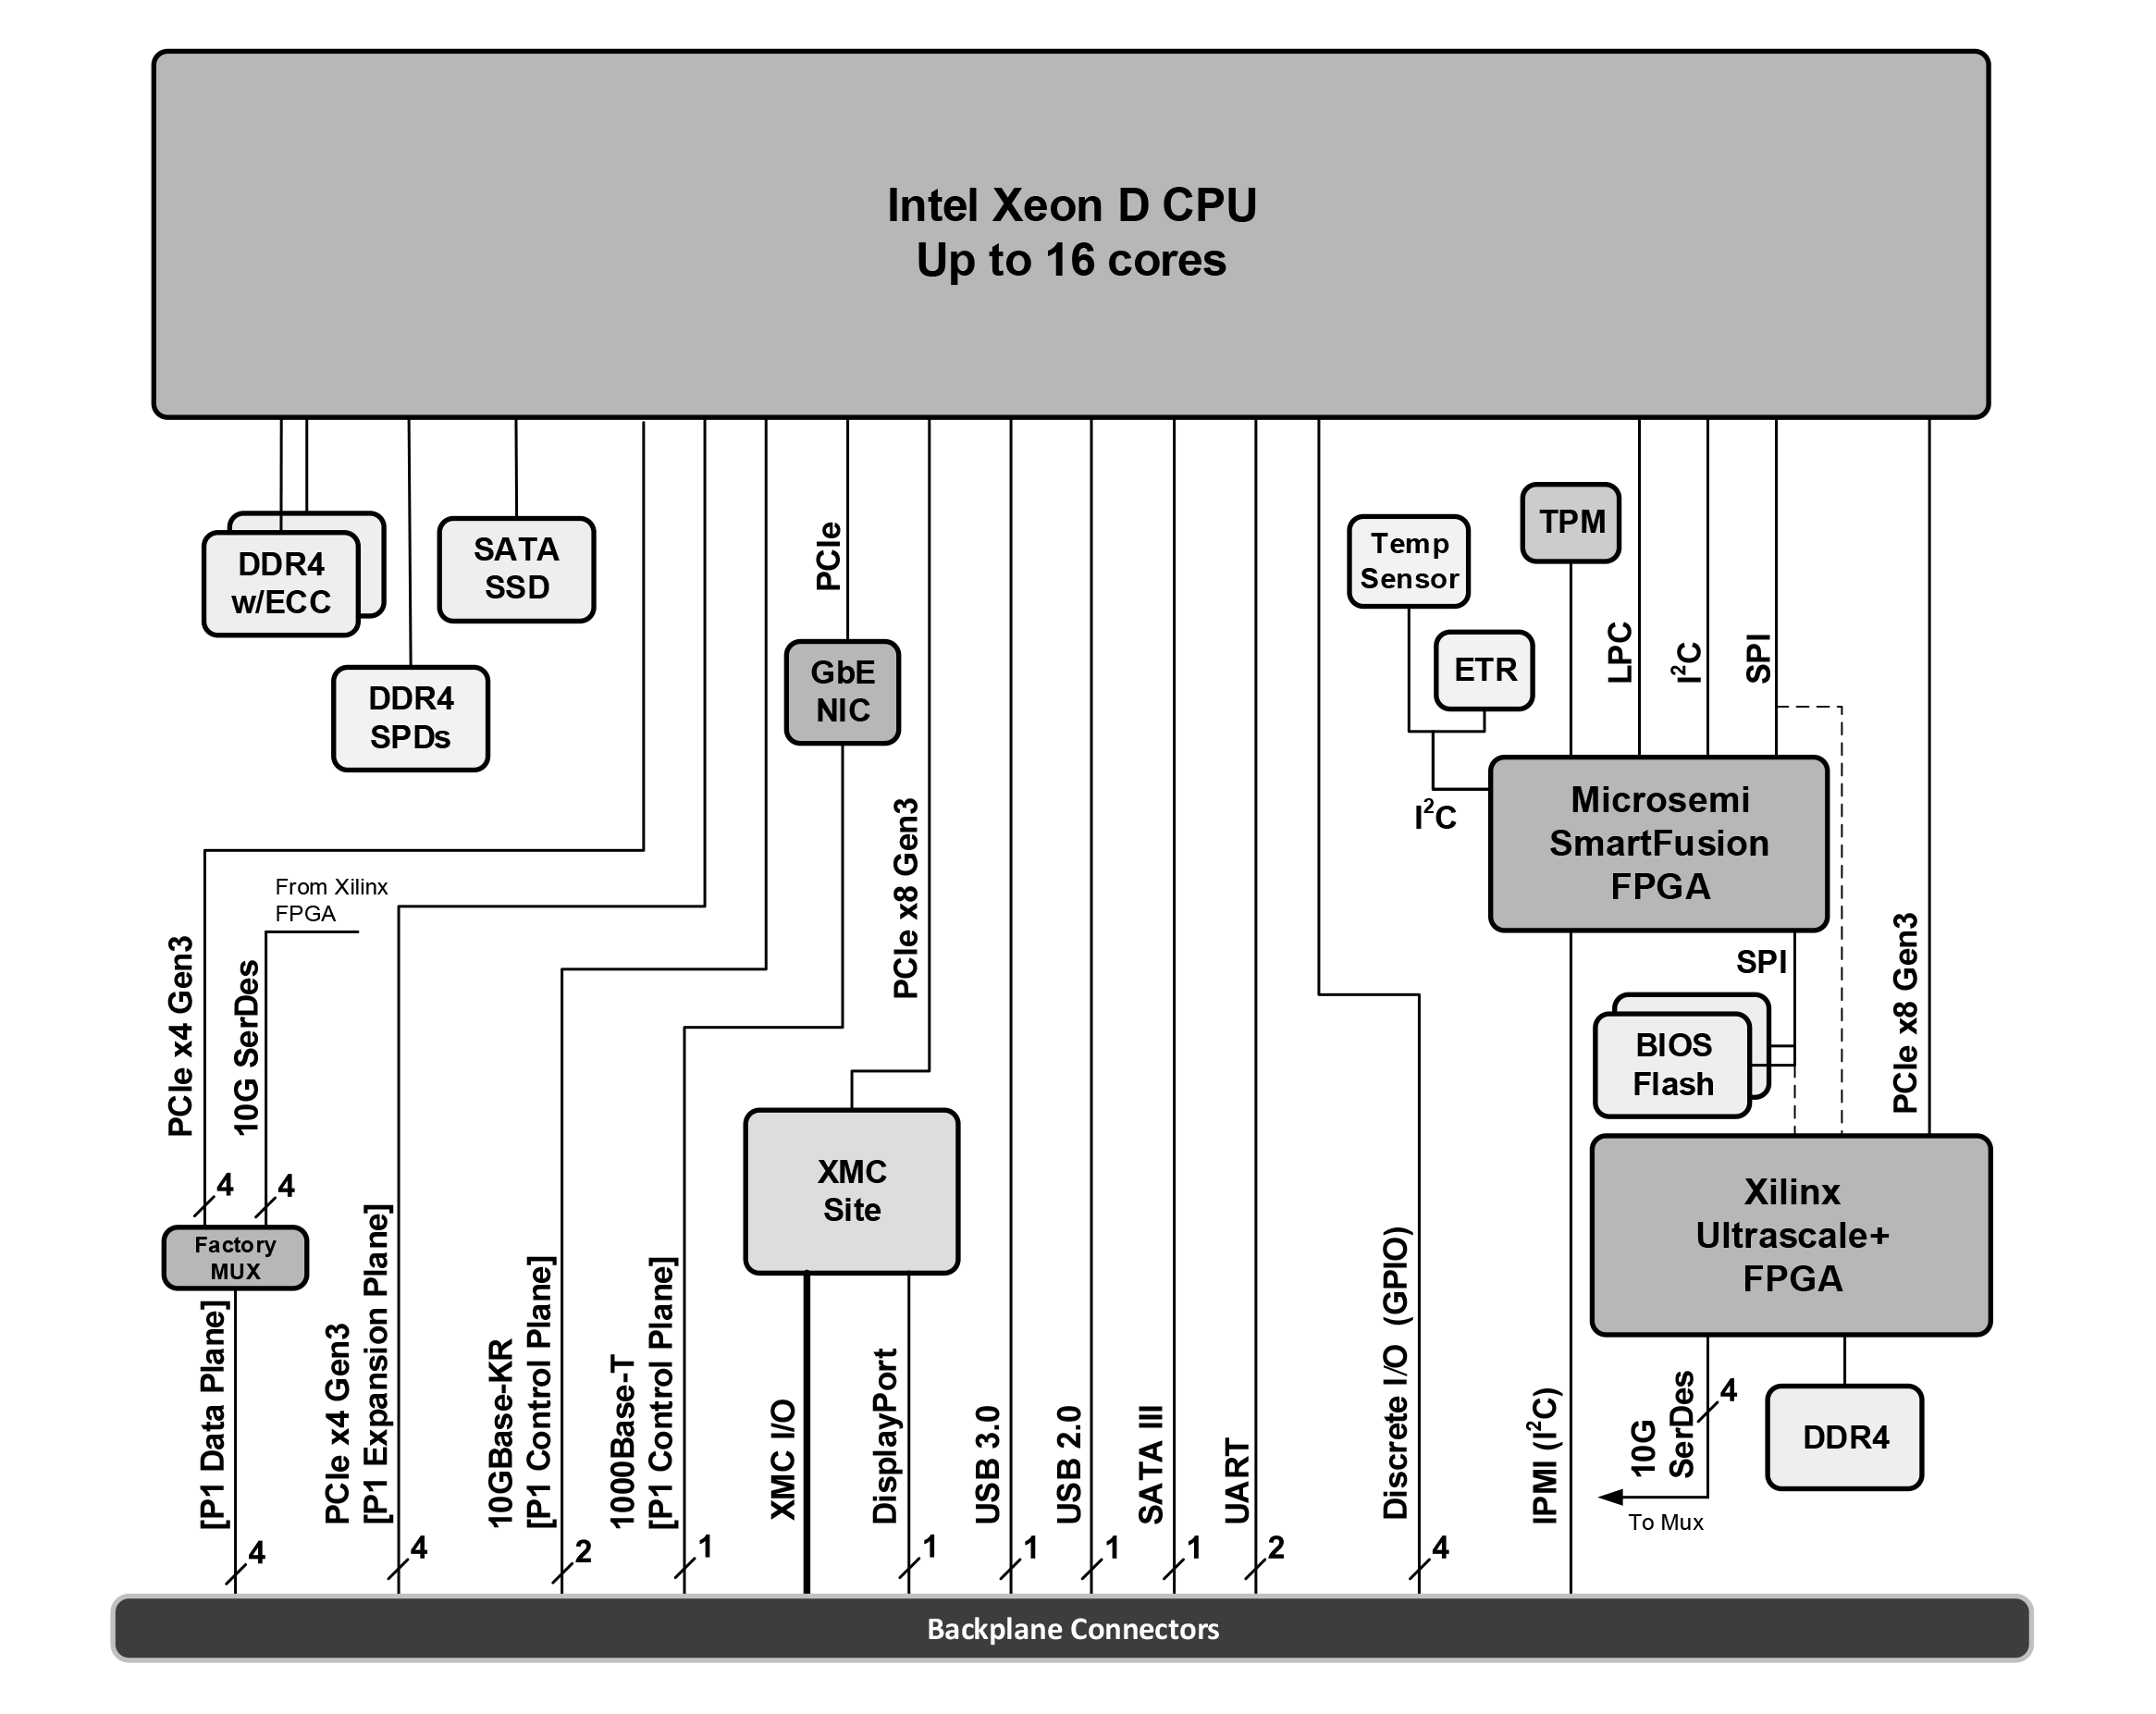 Aitech U-C8770 Block diagram